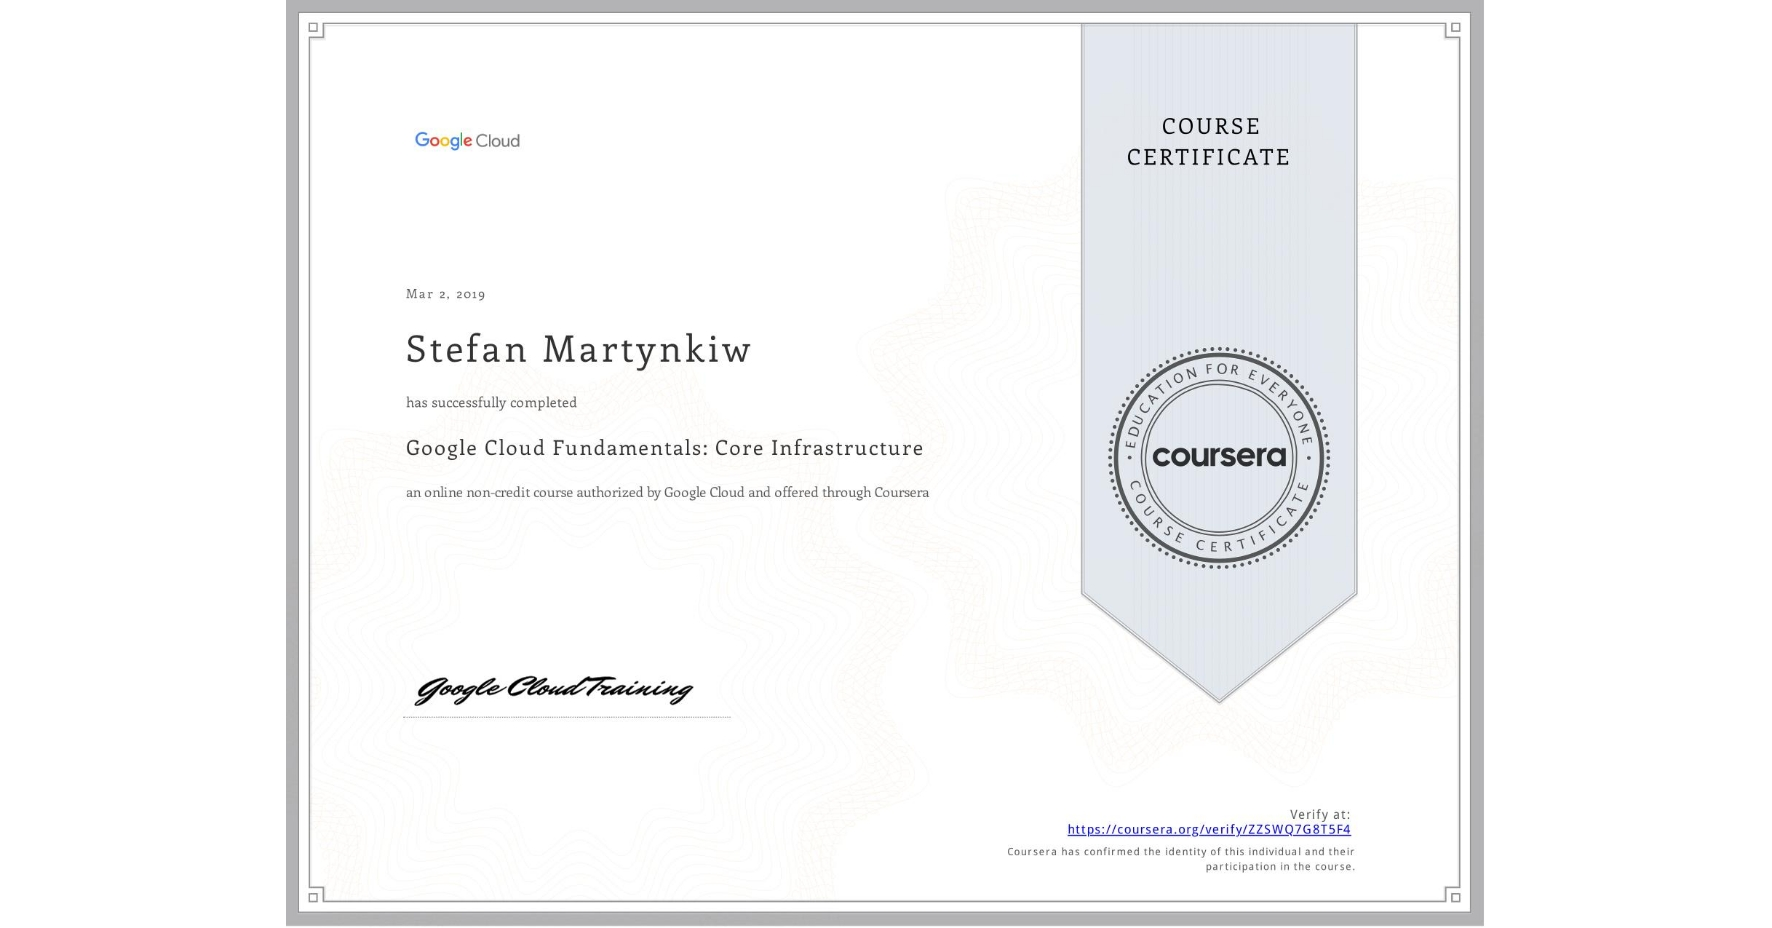 View certificate for Stefan Martynkiw, Google Cloud Platform Fundamentals: Core Infrastructure, an online non-credit course authorized by Google Cloud and offered through Coursera